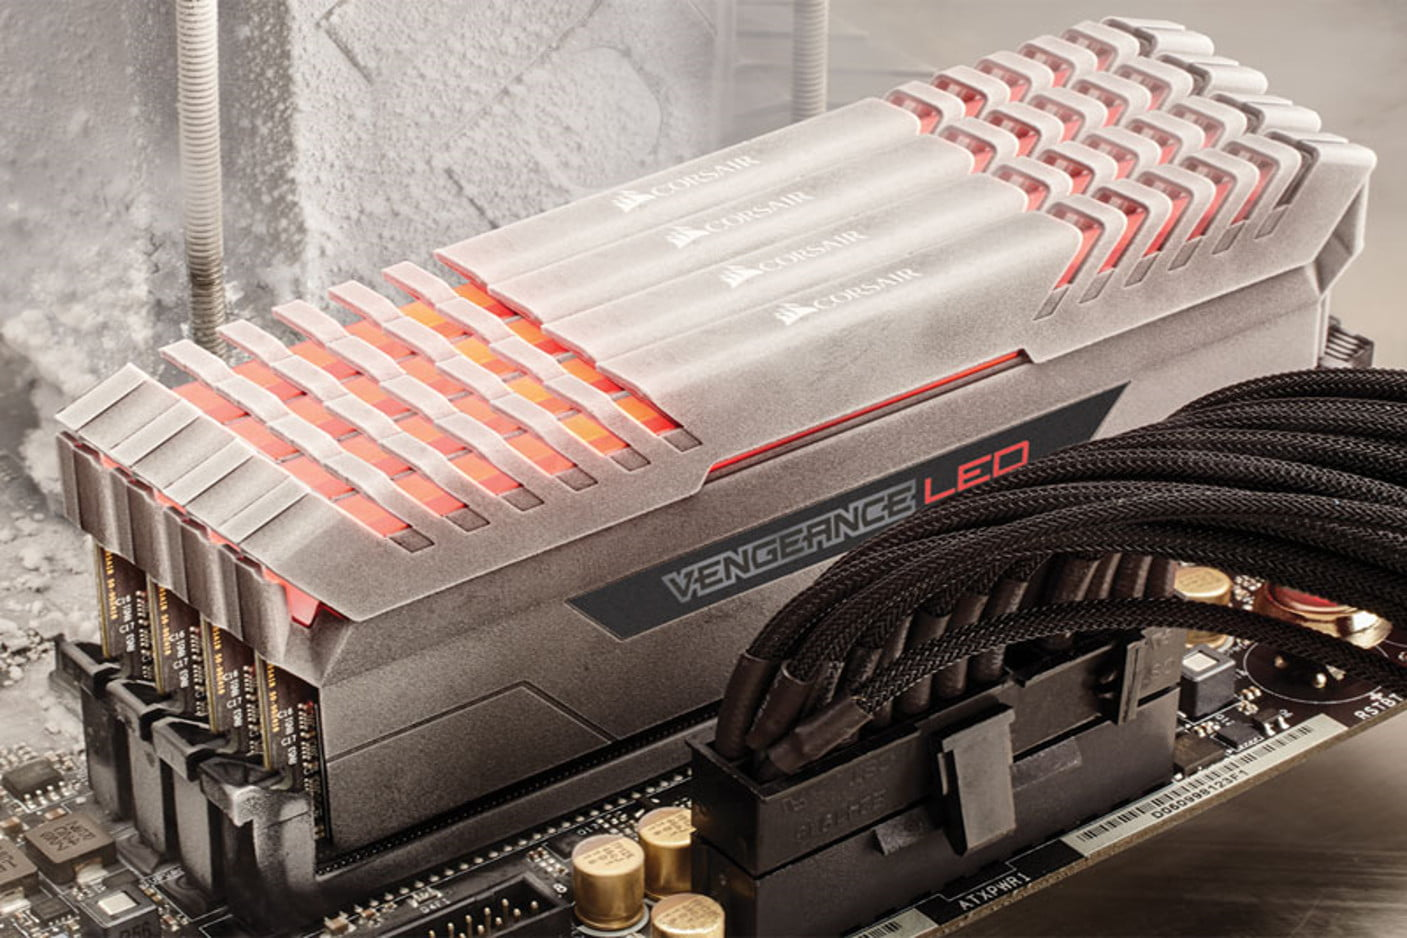 How much RAM do you need?